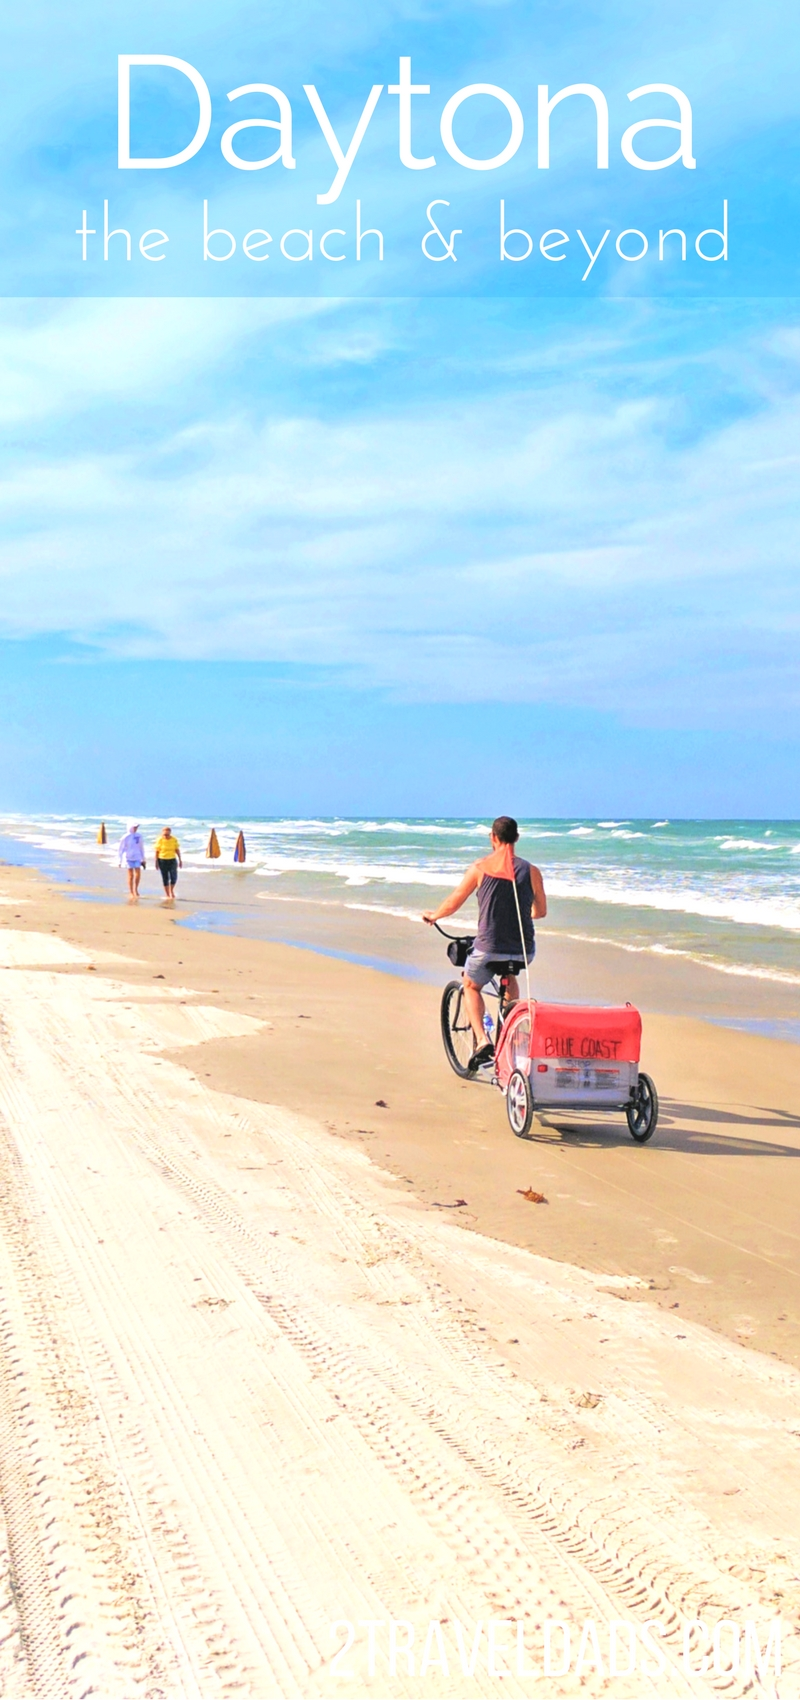 There's more to Daytona Beach than the beach itself. Family travel to Dayton includes Florida nature, the perfect lighthouse, freshwater springs and pockets of fun culture. 2traveldads.com